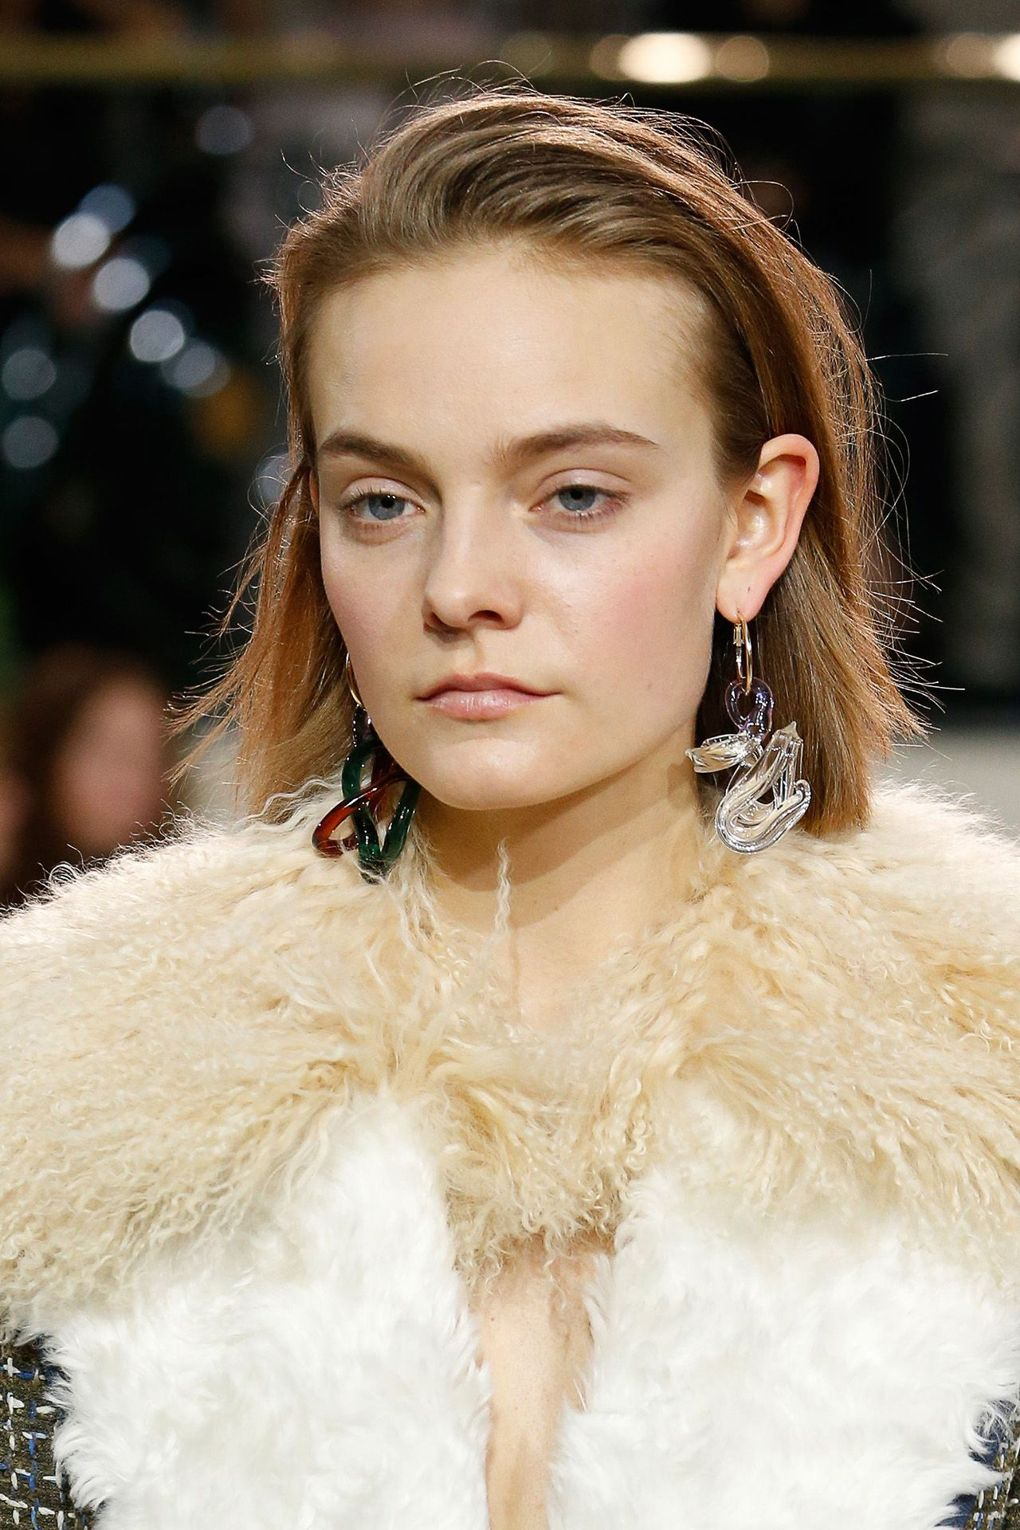 The City: London The Show: Peter Pilotto The Look: Pushed-back hair